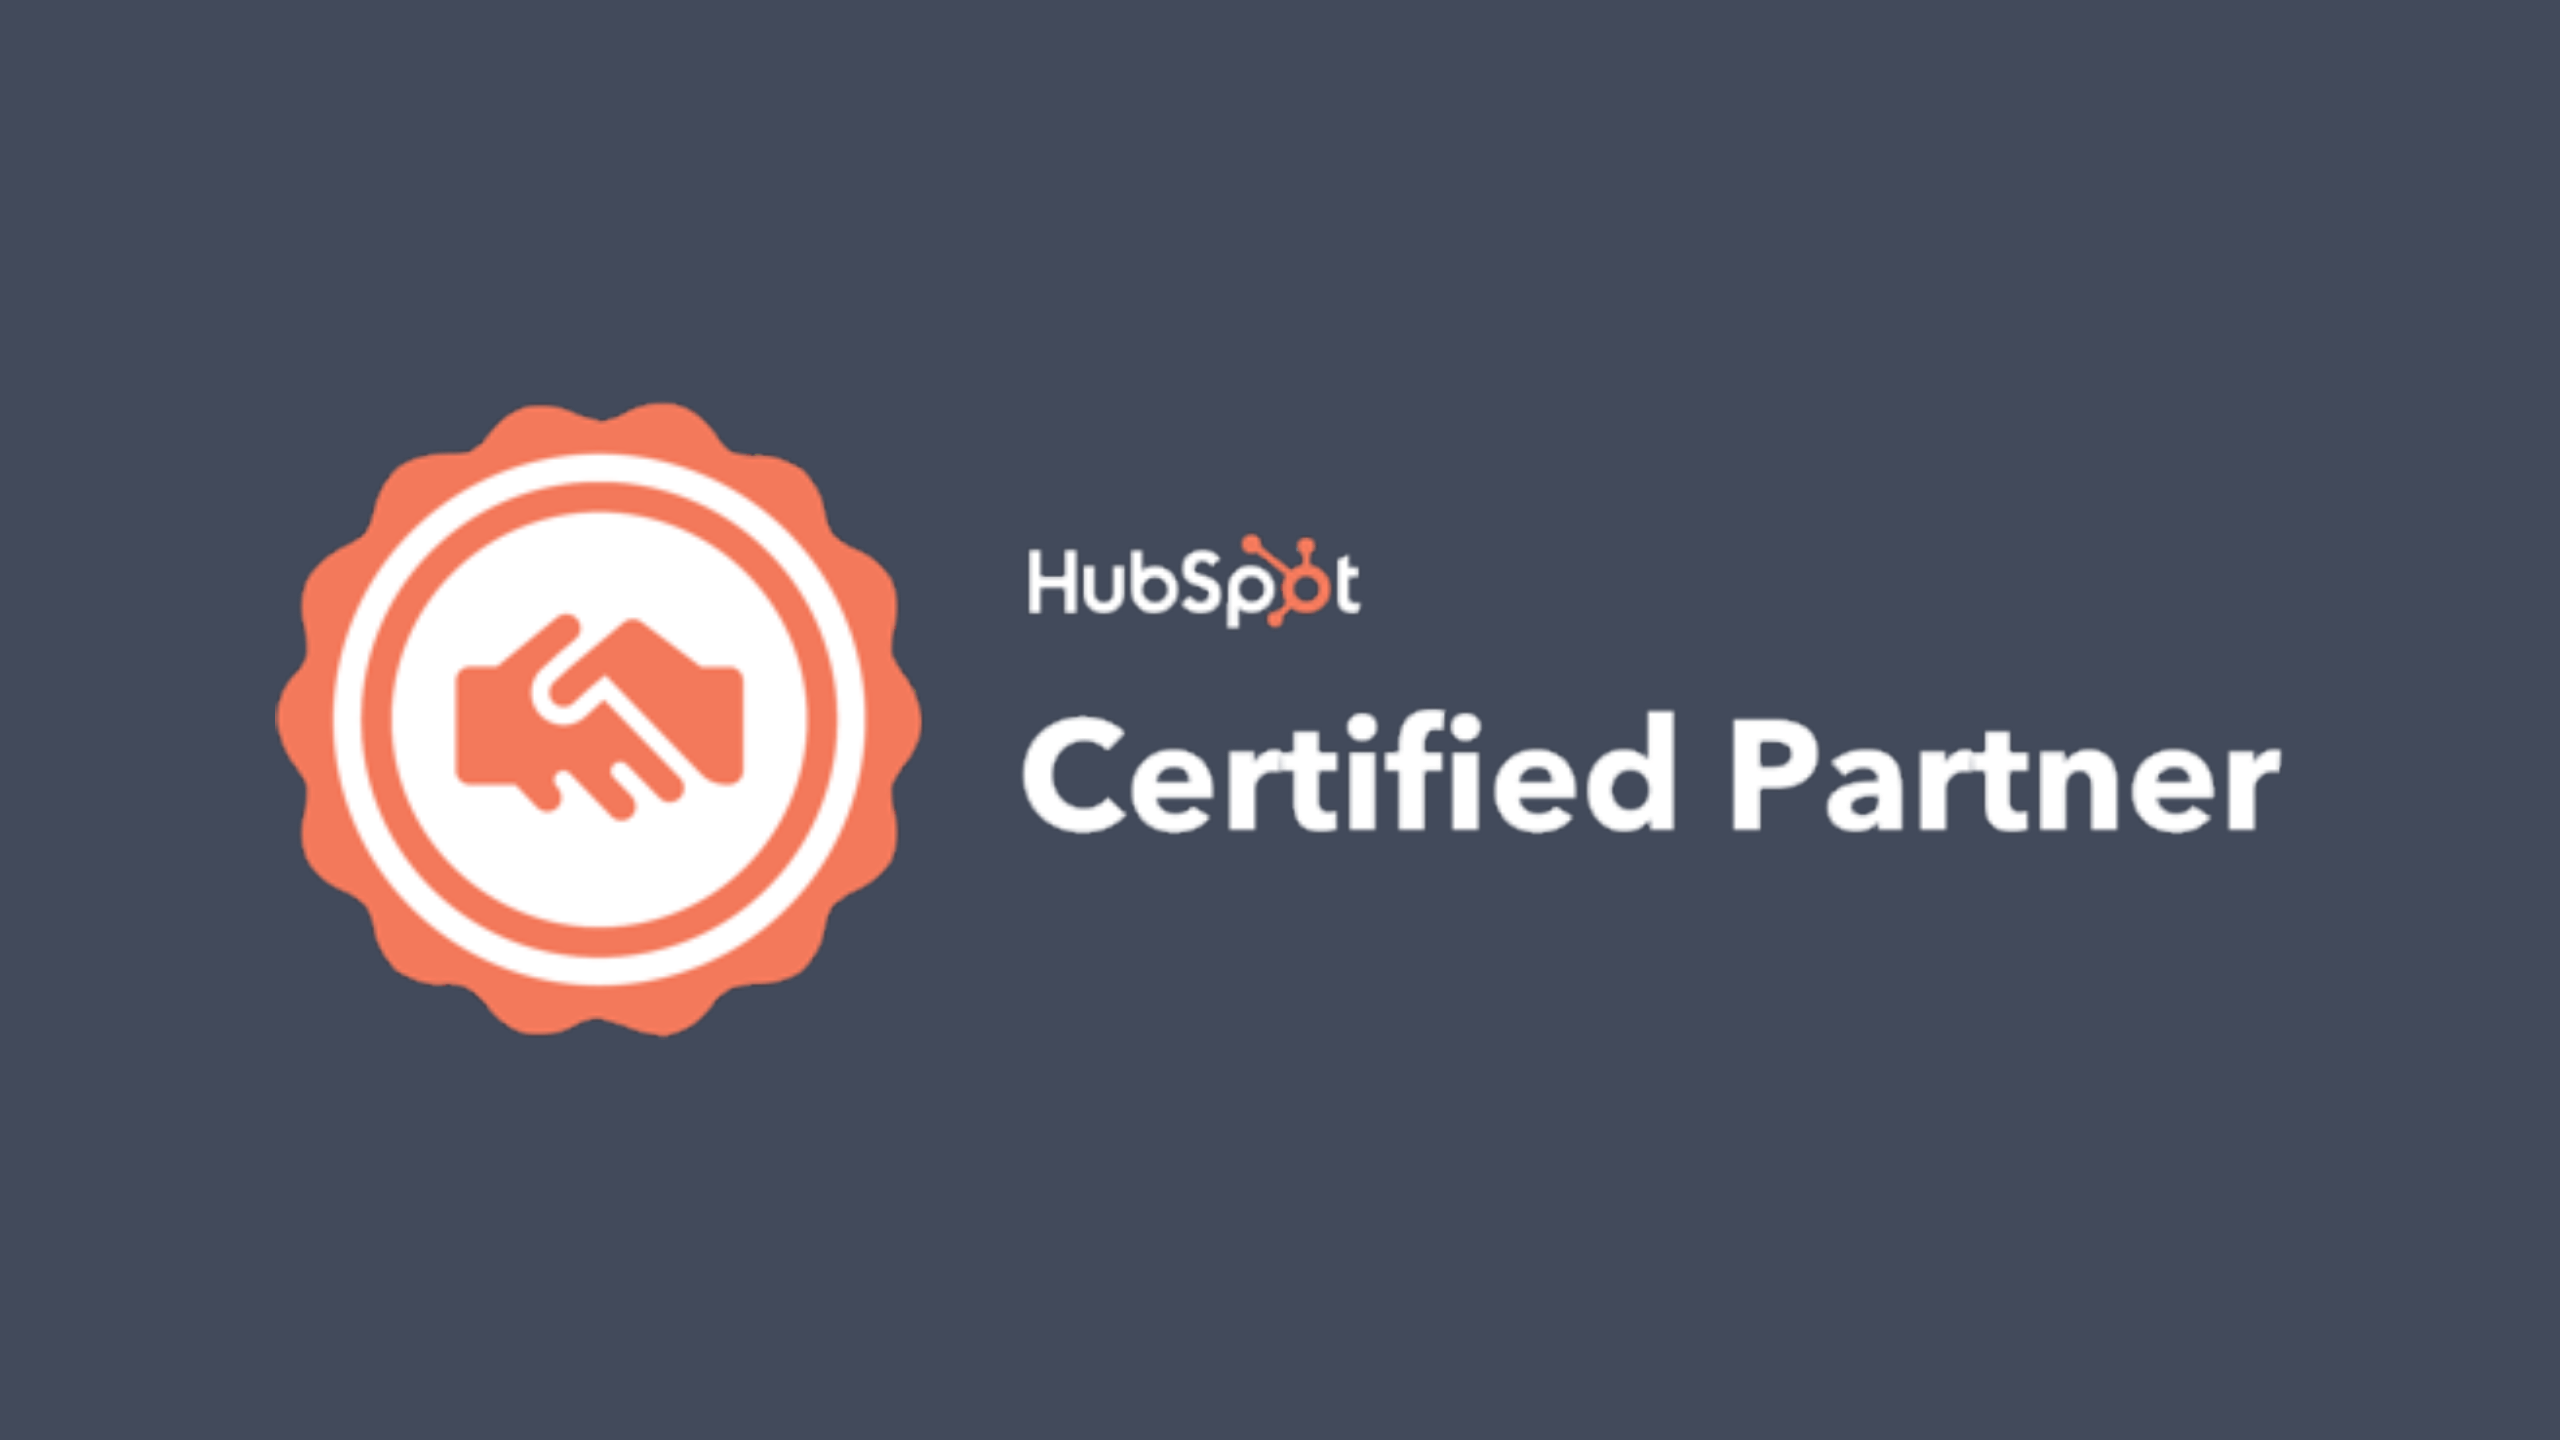 HubSpot Certified Agency Partner logo